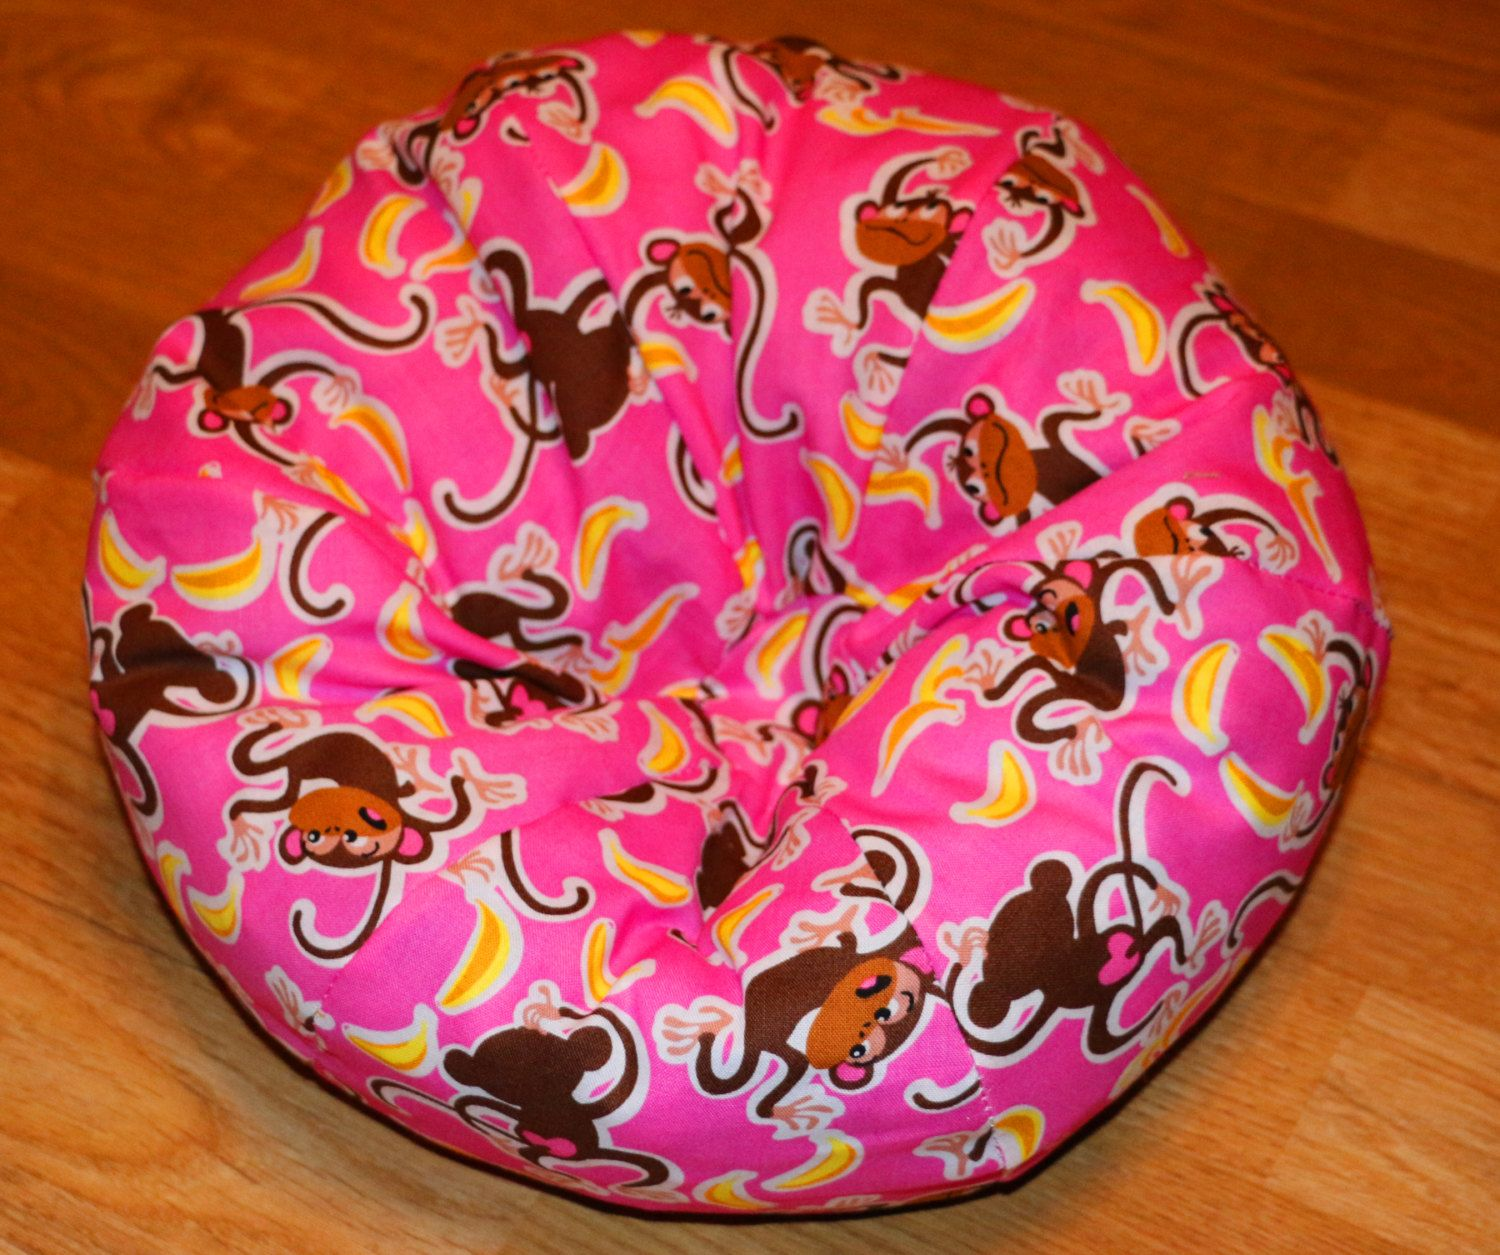 American Girl Size Bean Bag Chair In Pink With Monkeys Fabric For 18 Dolls